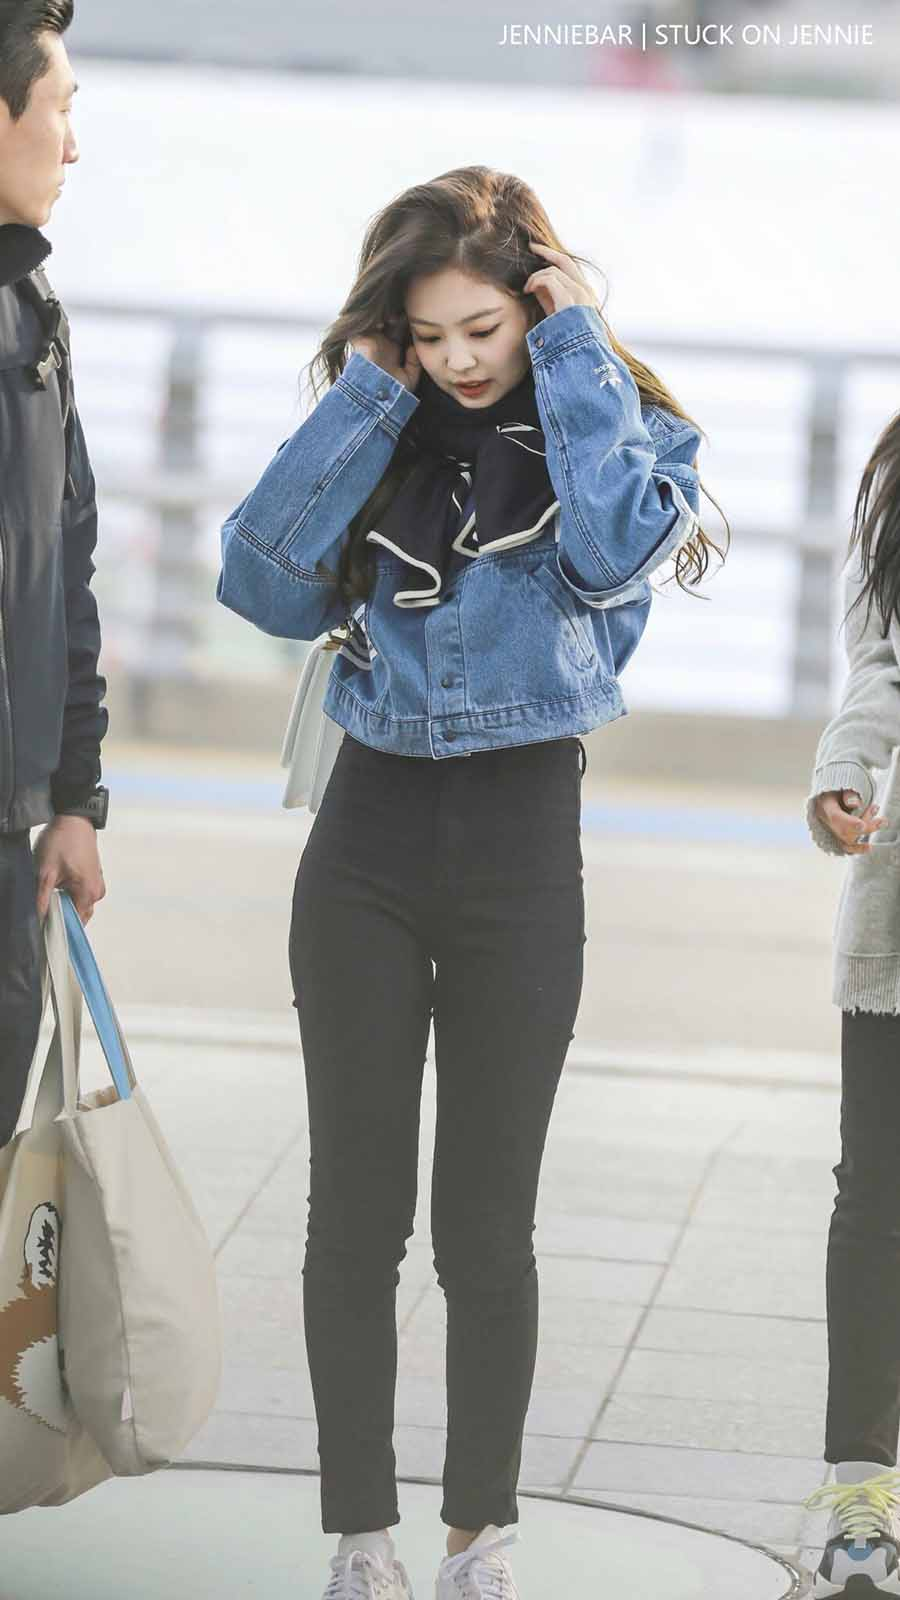 BLACKPINK's style is so hypnotic, there's no surprise the members are leaders in the fashion world. Go behind the style of Jennie, Lisa, Rose, and Jisoo.